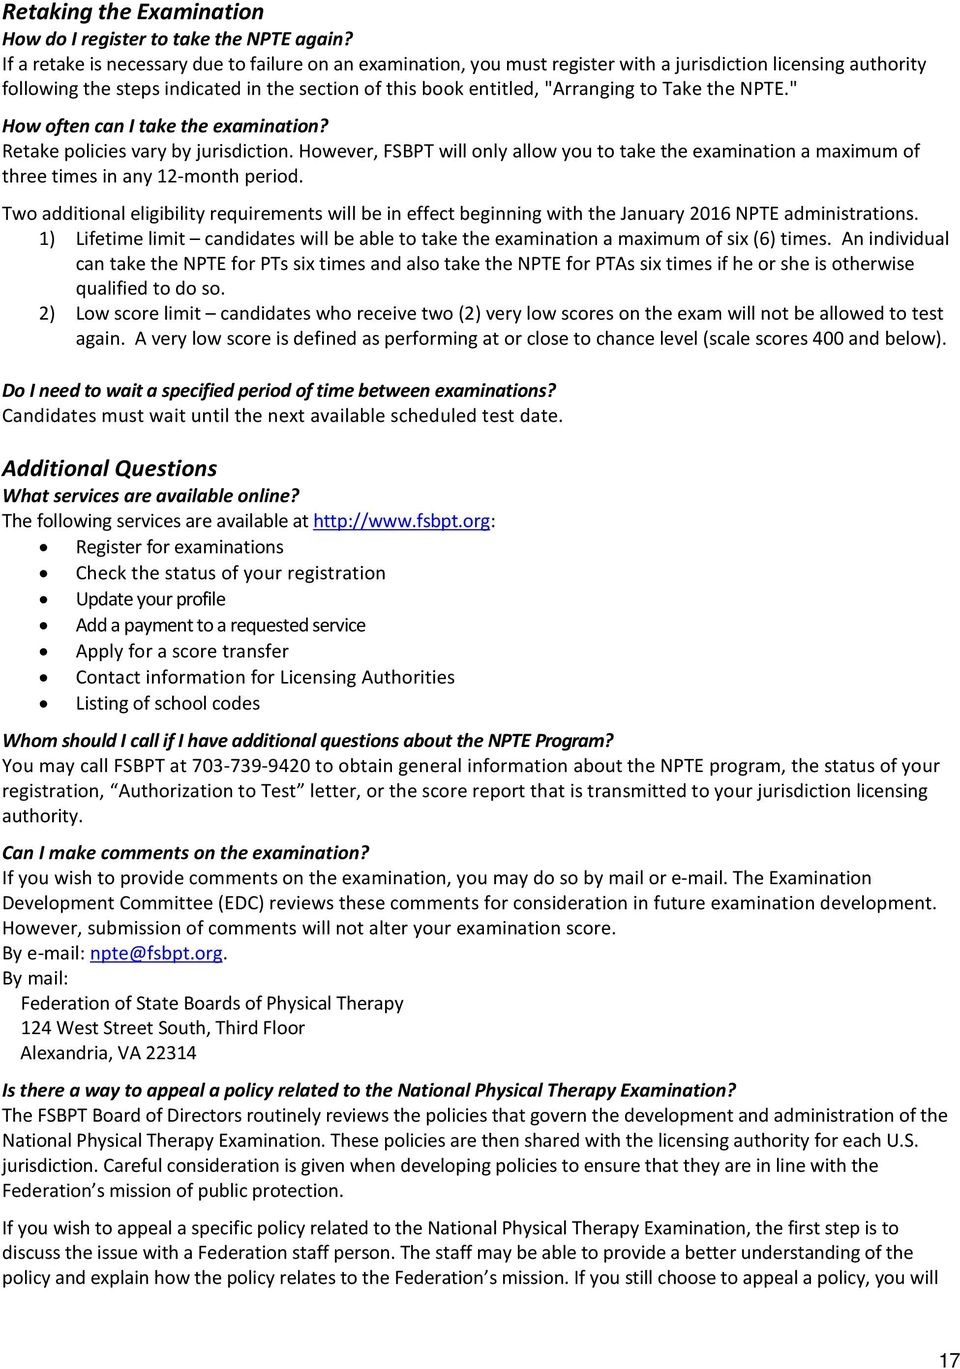 NPTE Candidate Handbook For the National Physical Therapy